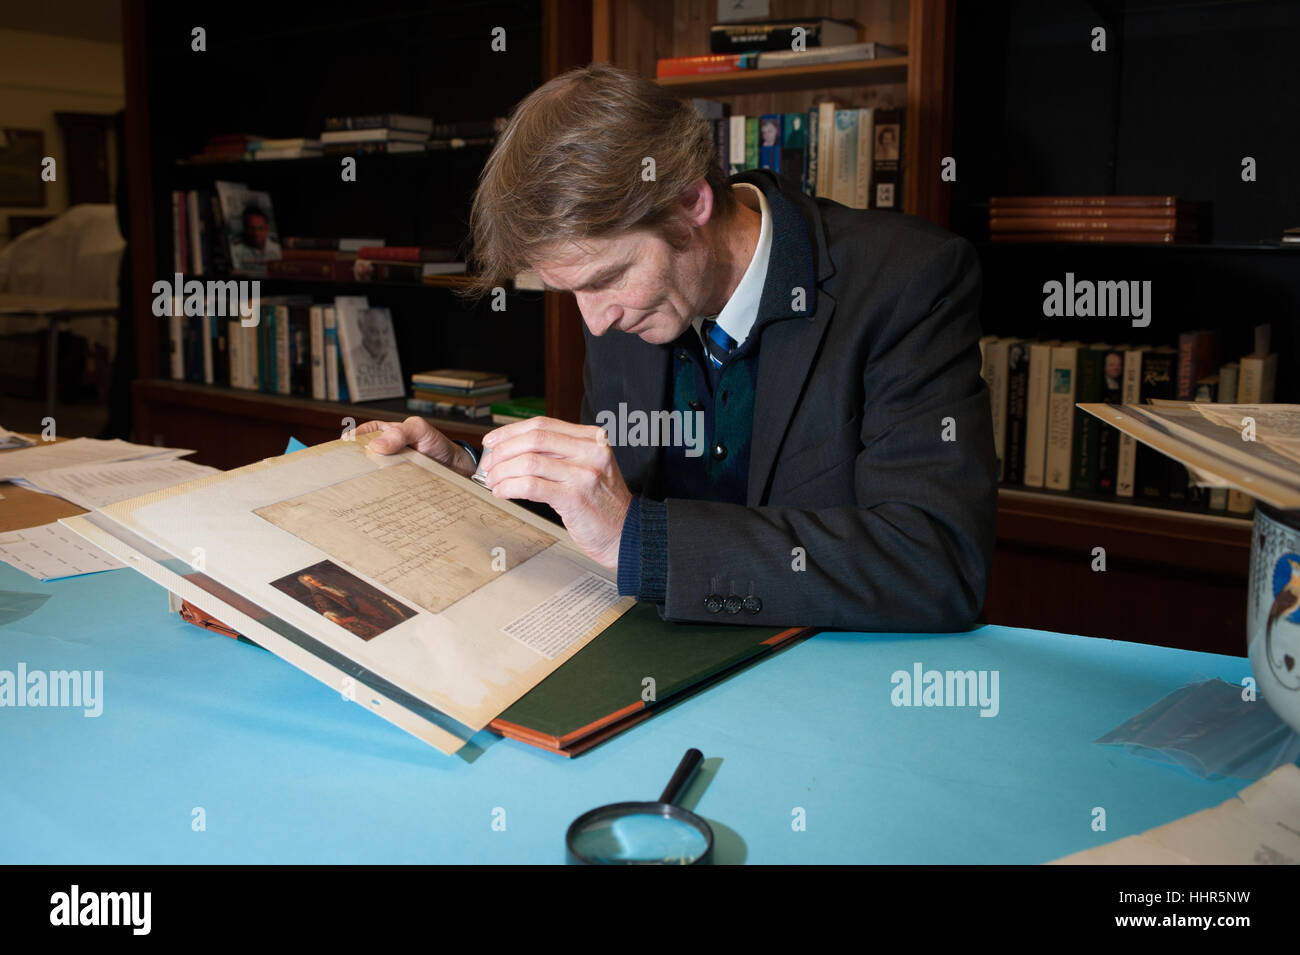 Worthing, West Sussex, UK. 20th Jan, 2017. A collection of more than 1,000 signatures from iconic historical figures - Stock Image